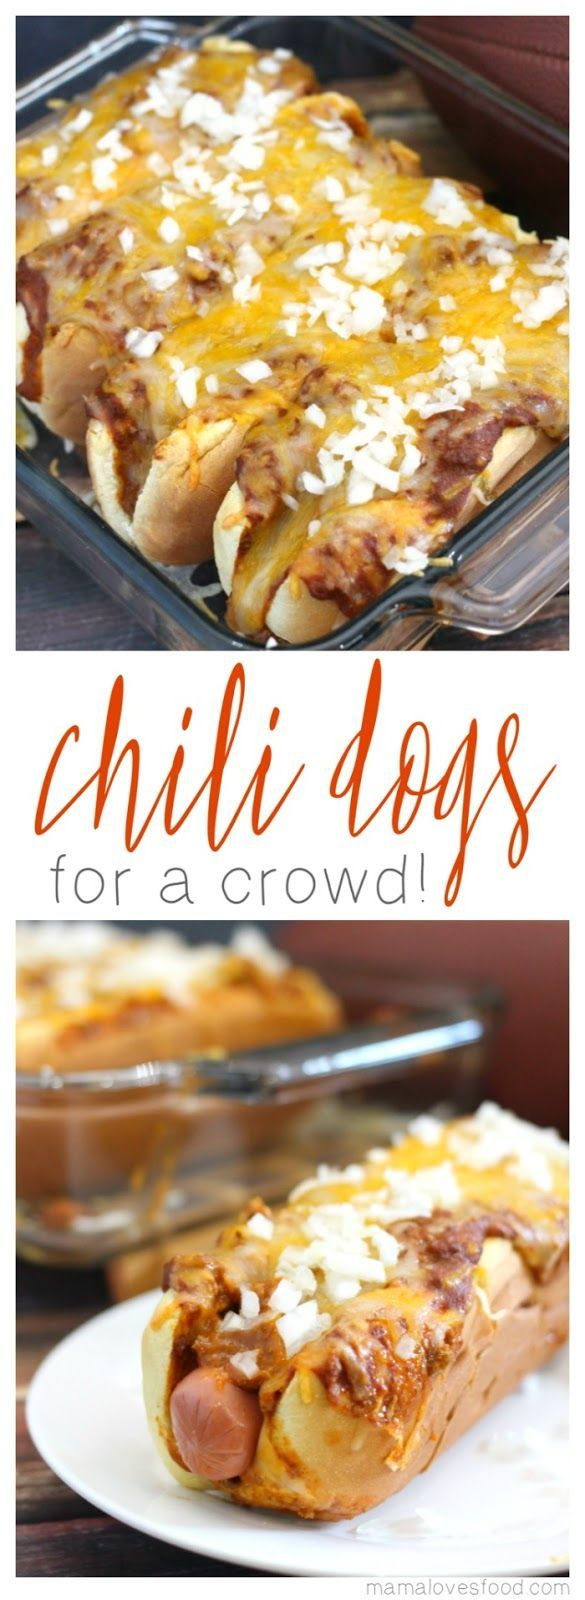 Making Chili Dogs for a Crowd or Chili Dog Casserole is the perfect way to feed a group and still be able to enjoy the party!